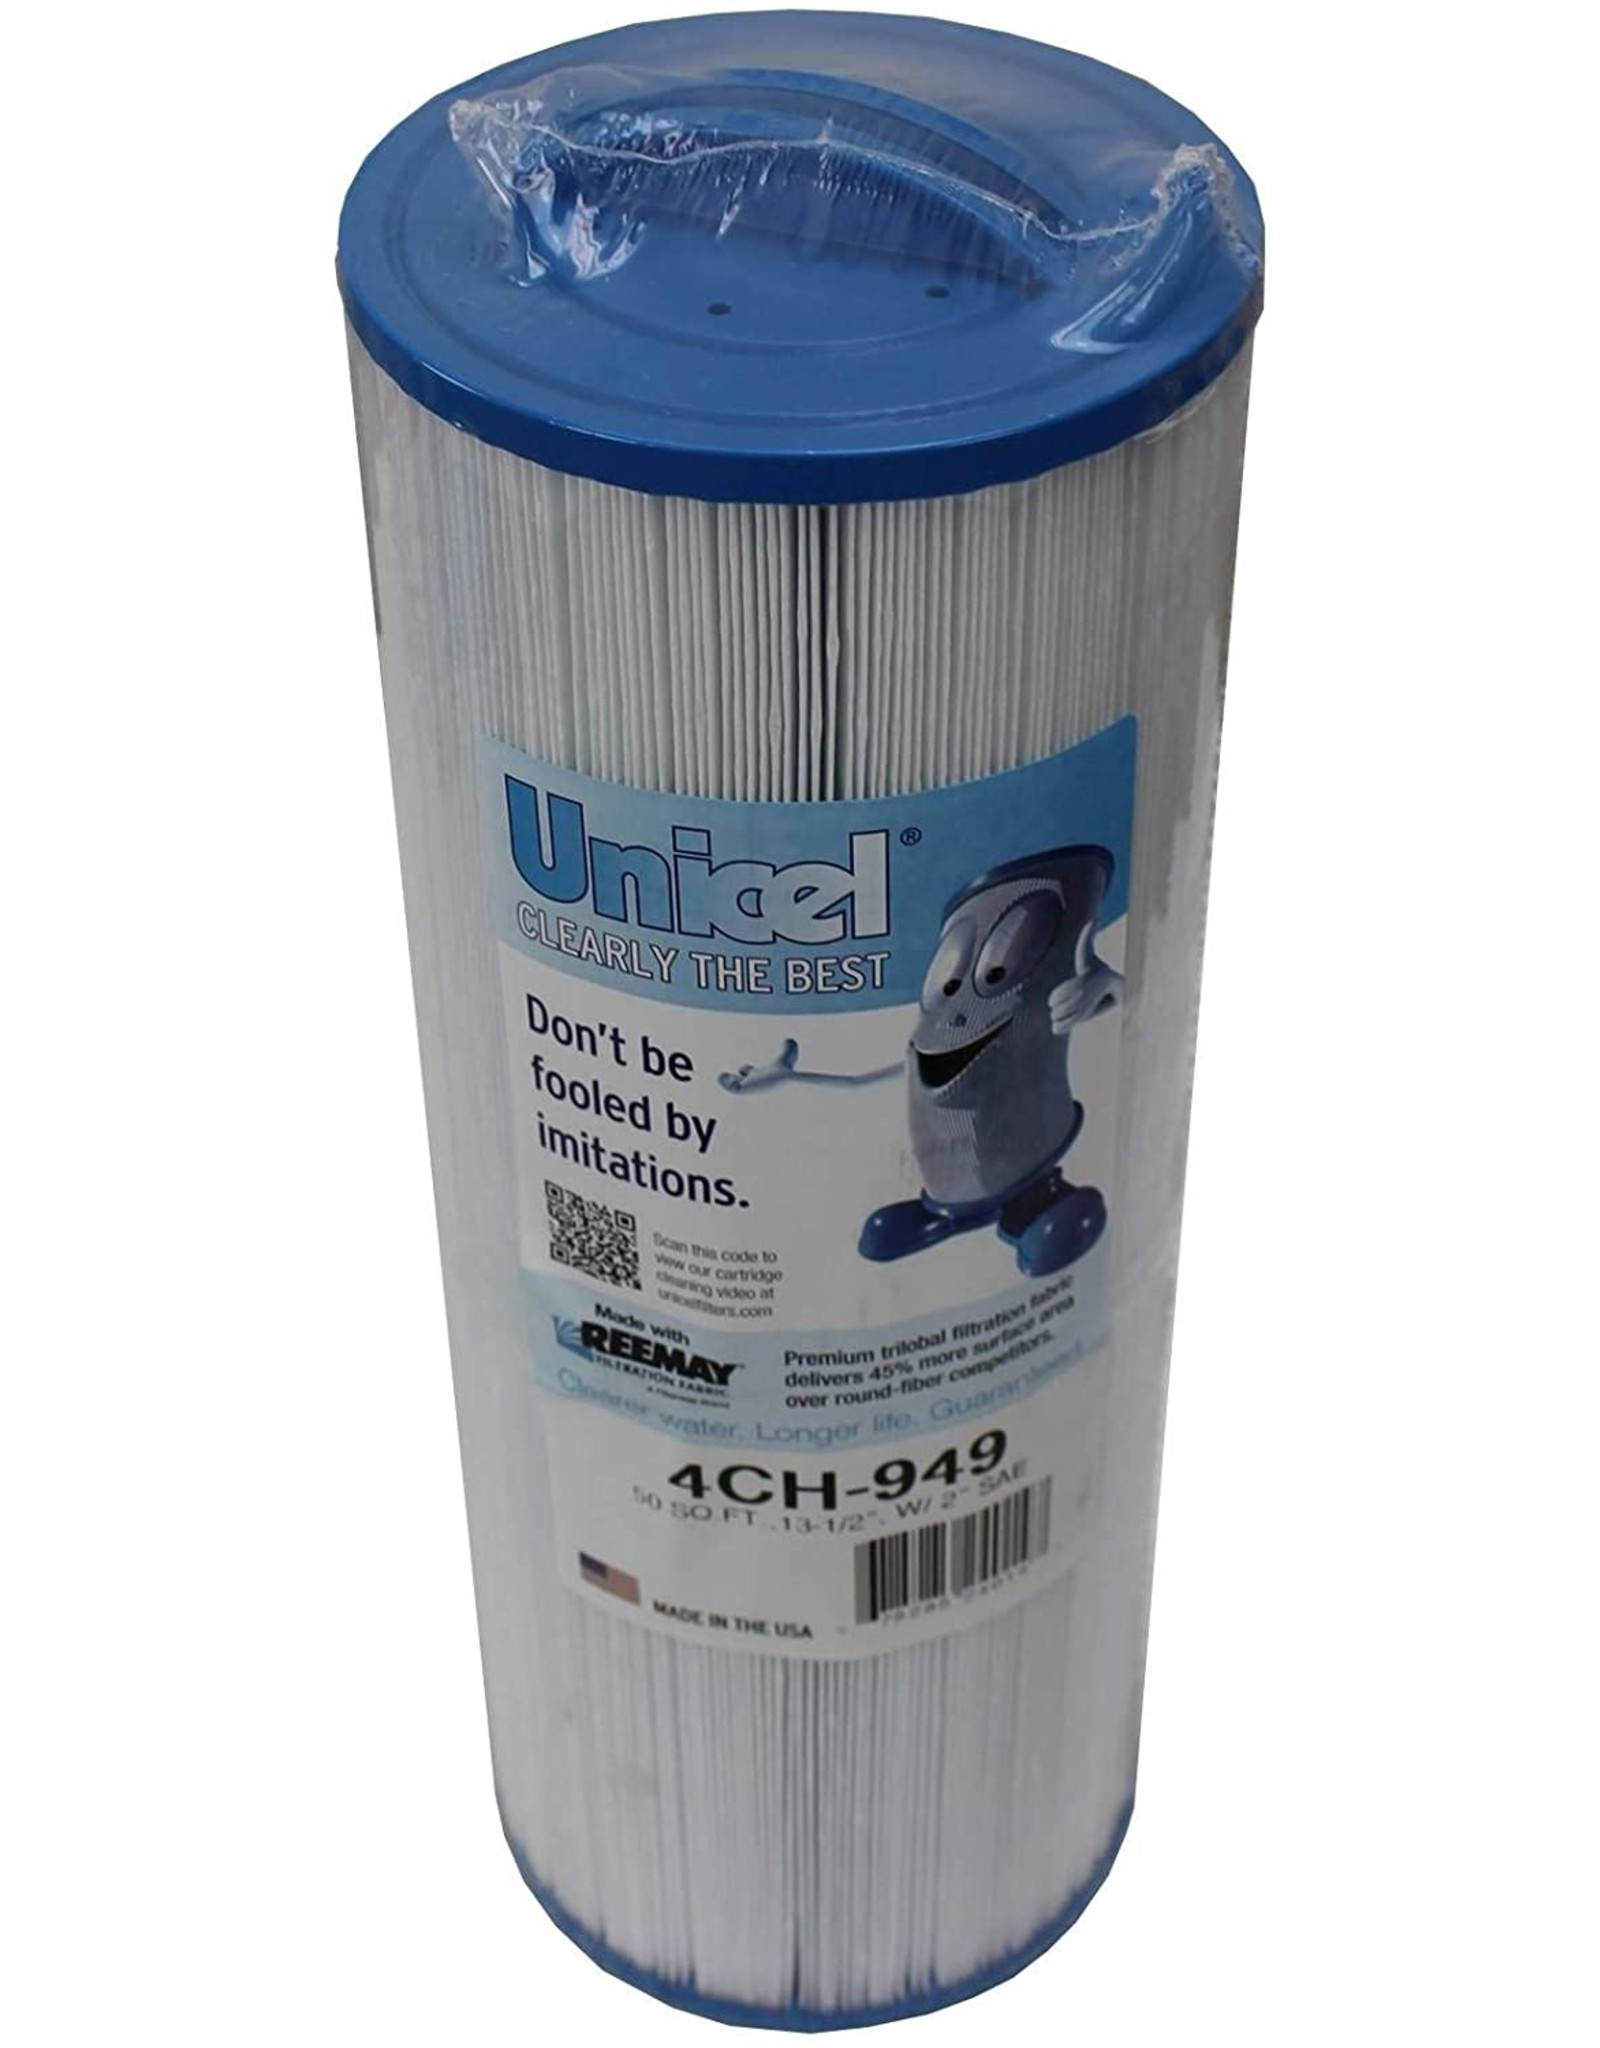 Unicel Filter Threaded Pleated 50 sq ft 4ch-949